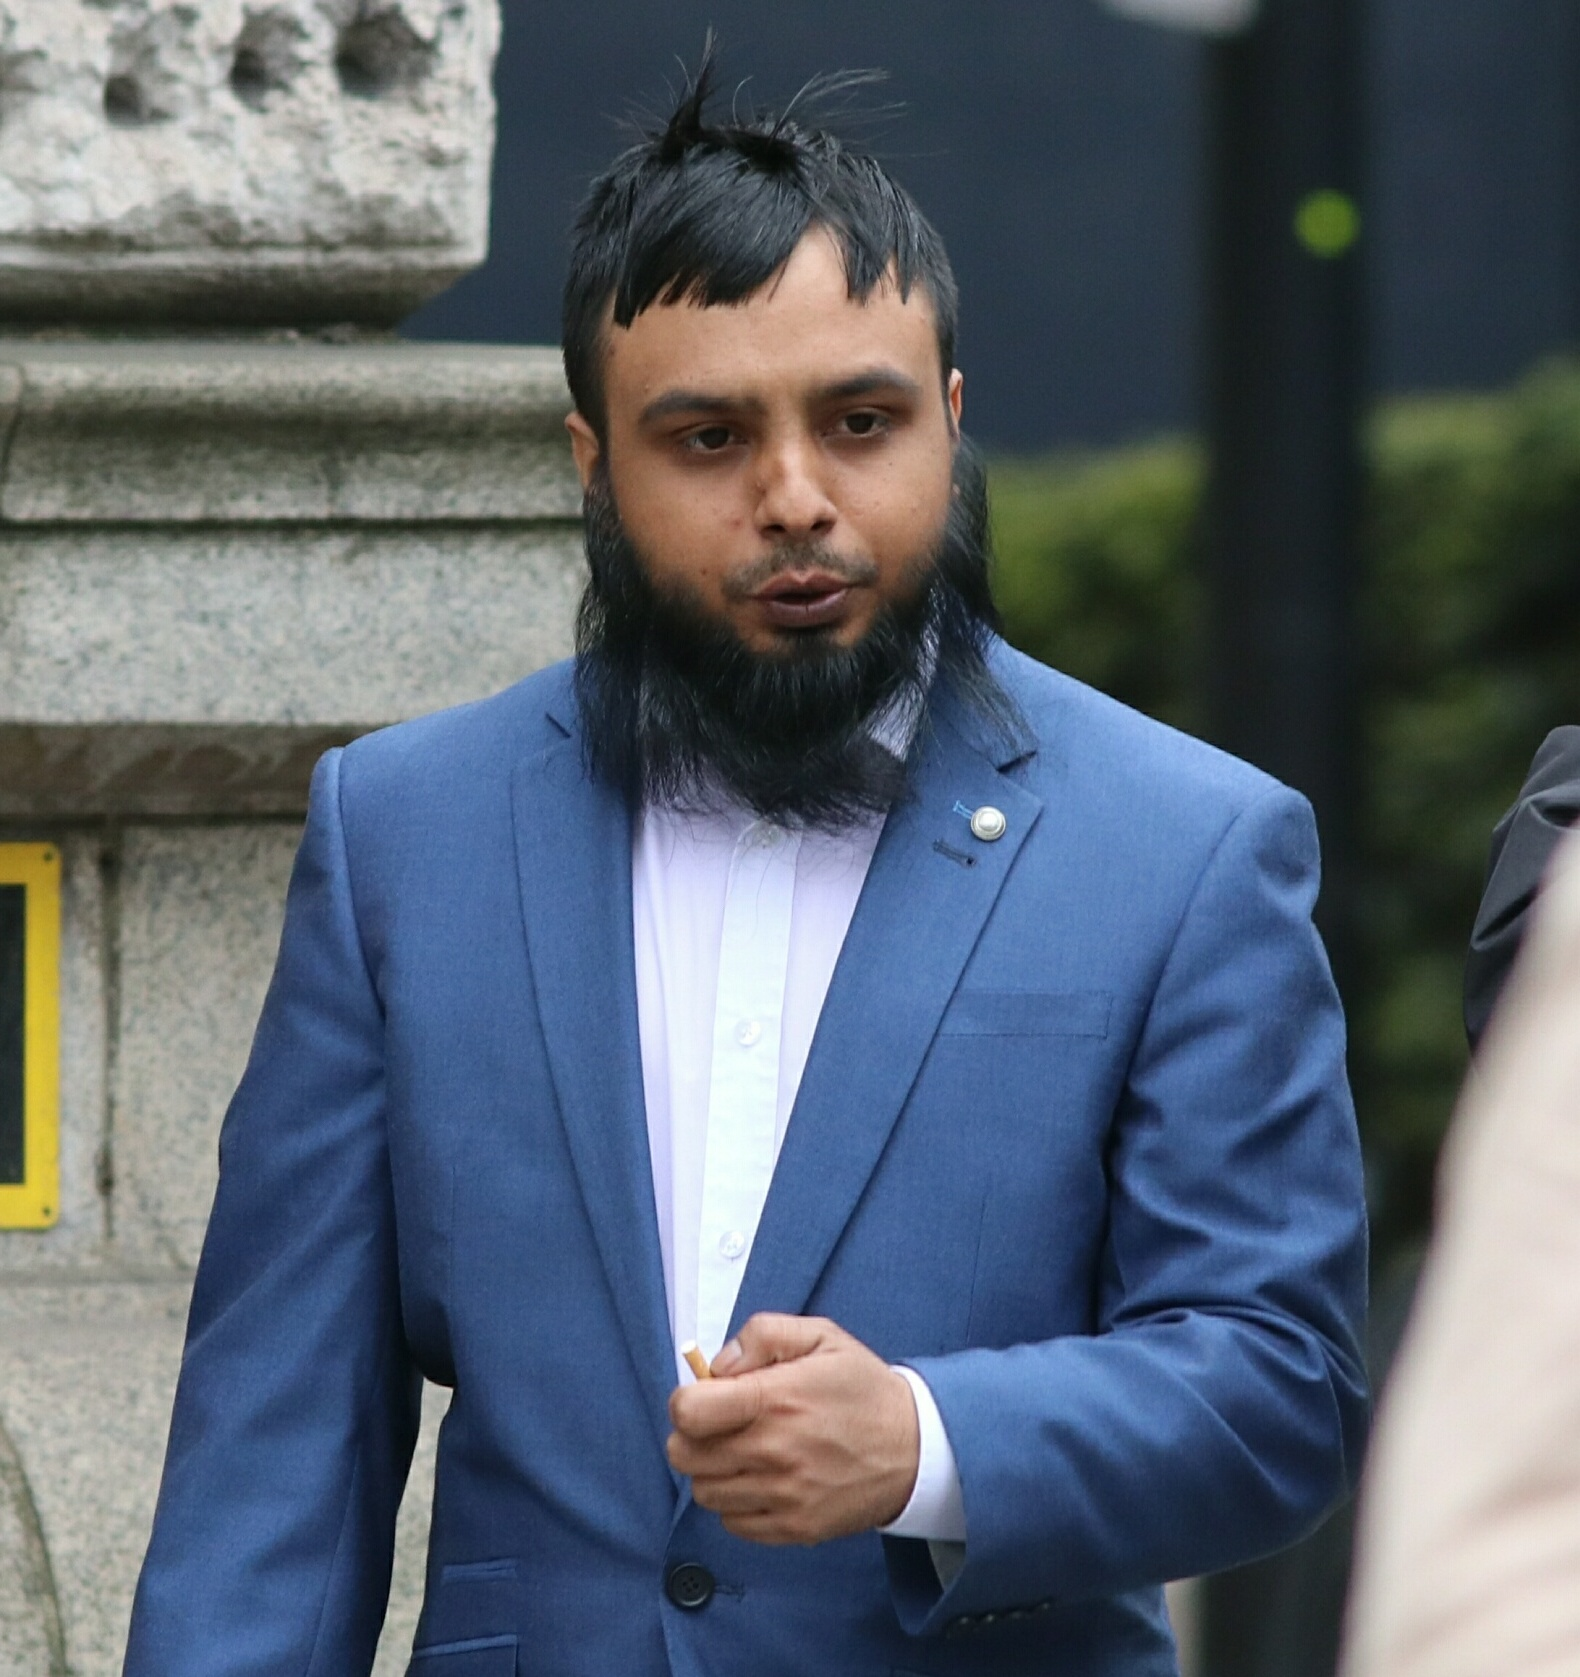 Bomb hoax terror suspect to stand trial